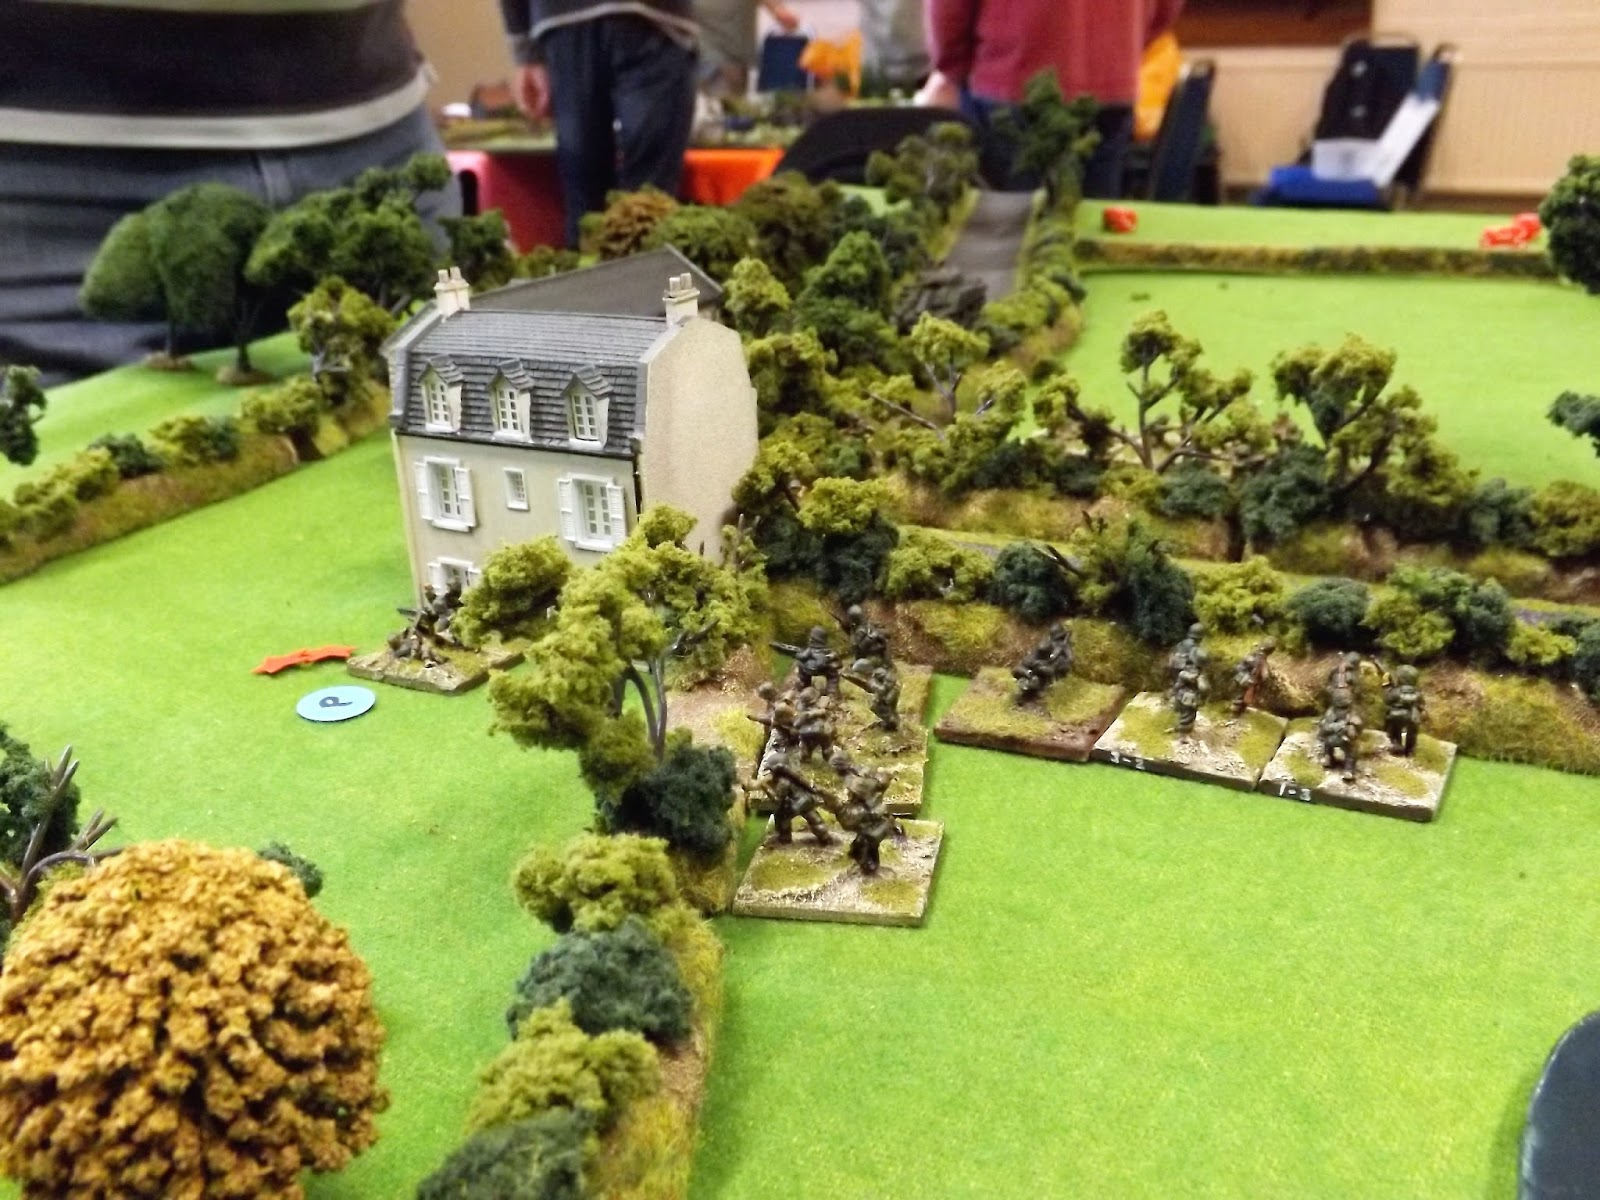 The German defenders are are caught by the rapid flanking move by the British heavy weapons teams